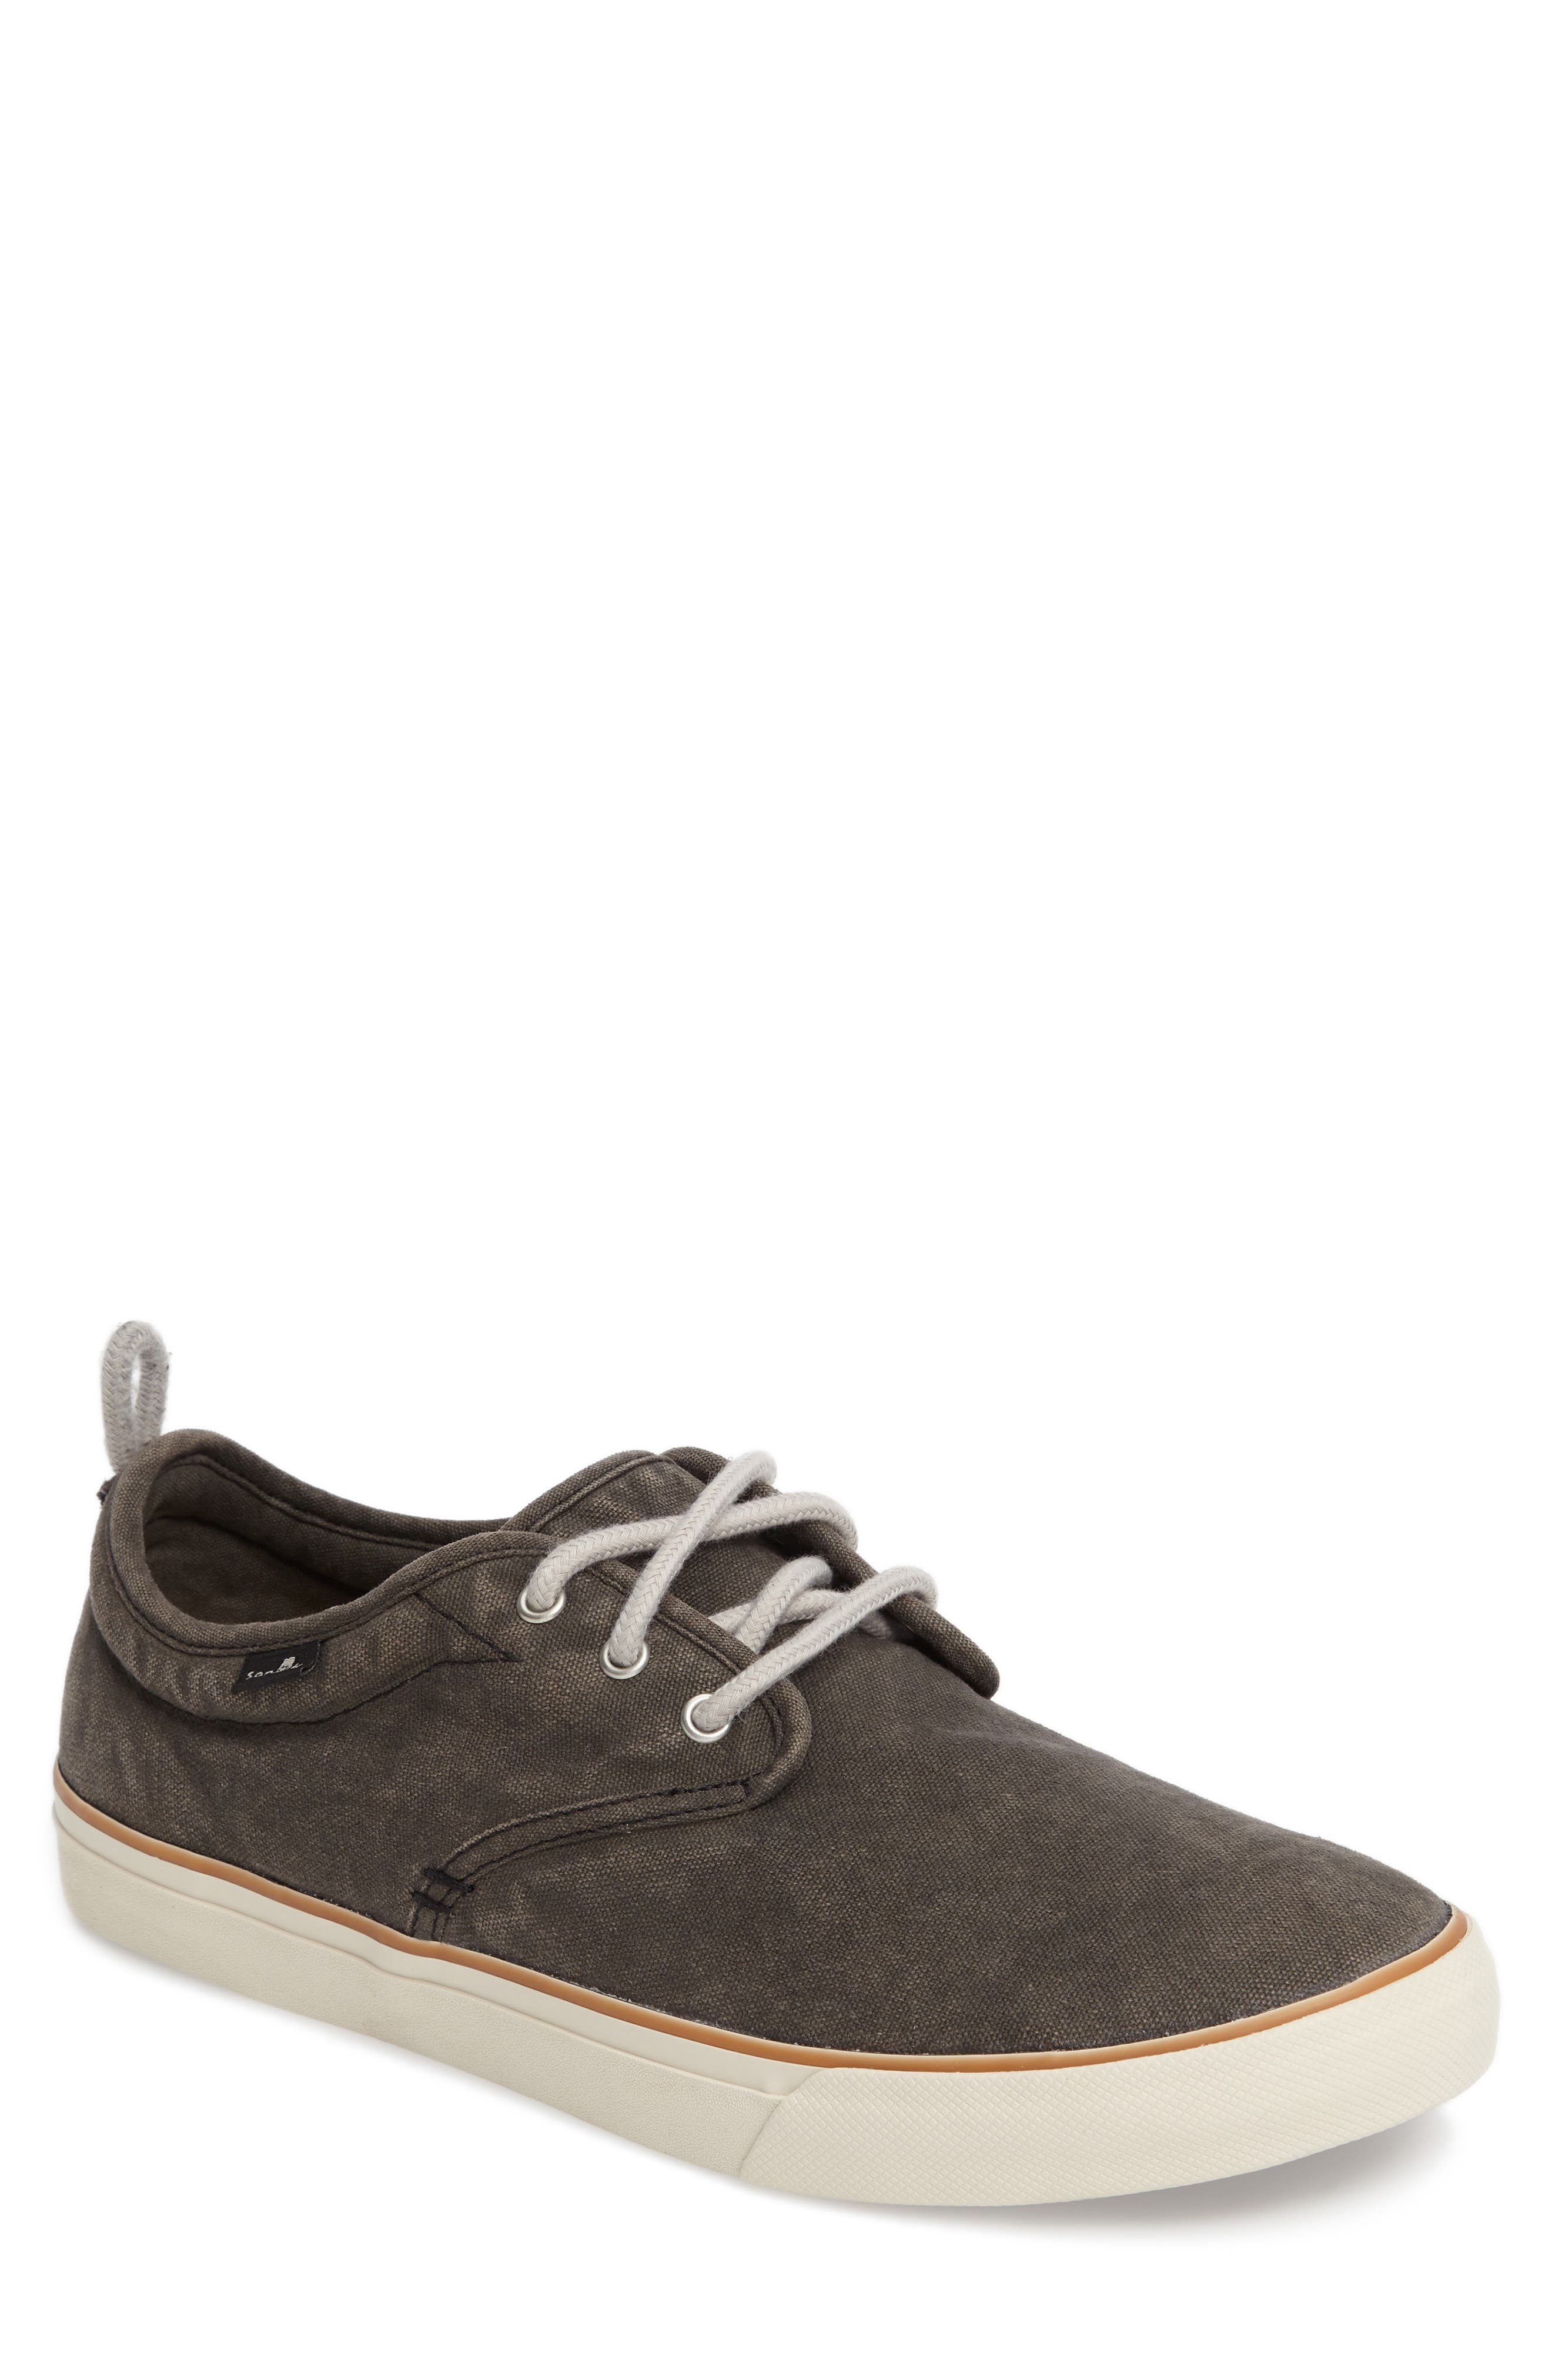 Guide Plus Sneaker,                         Main,                         color, Washed Black Canvas